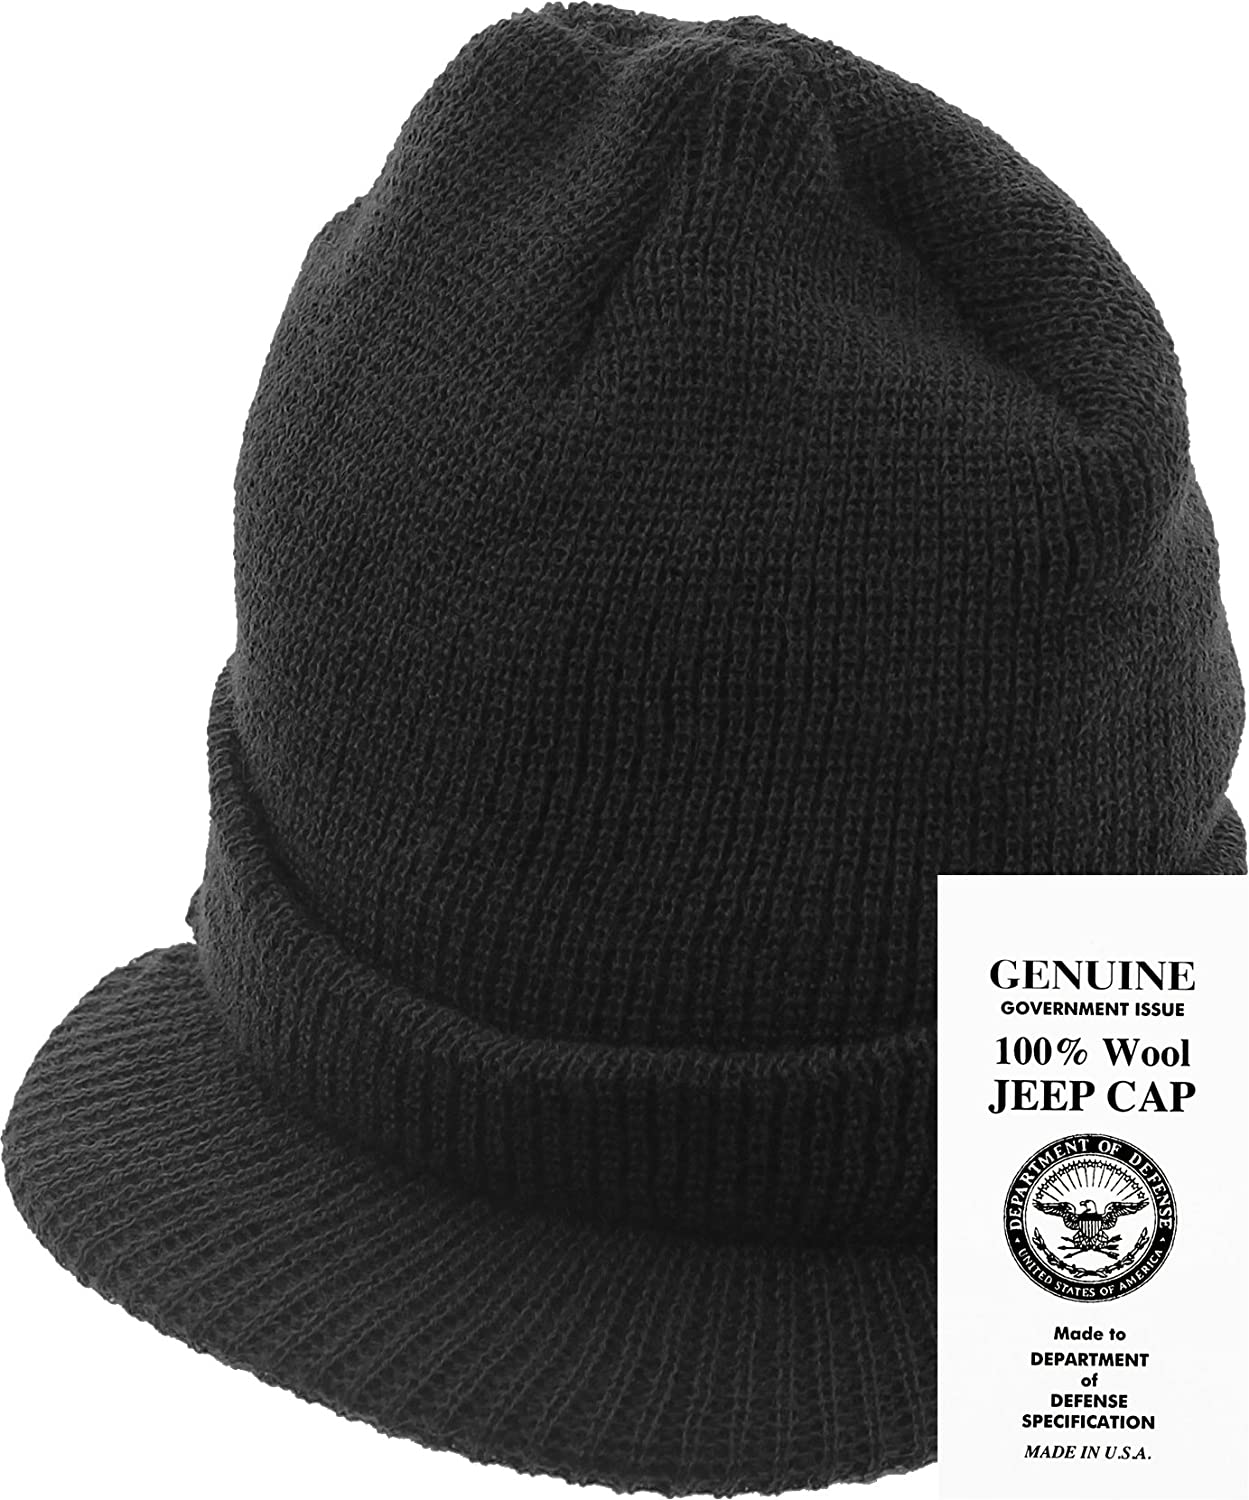 104708b430e Amazon.com  Genuine GI Official Military Wool Cold Weather Winter Knit Hat  Jeep Watch Cap (Black)  Clothing